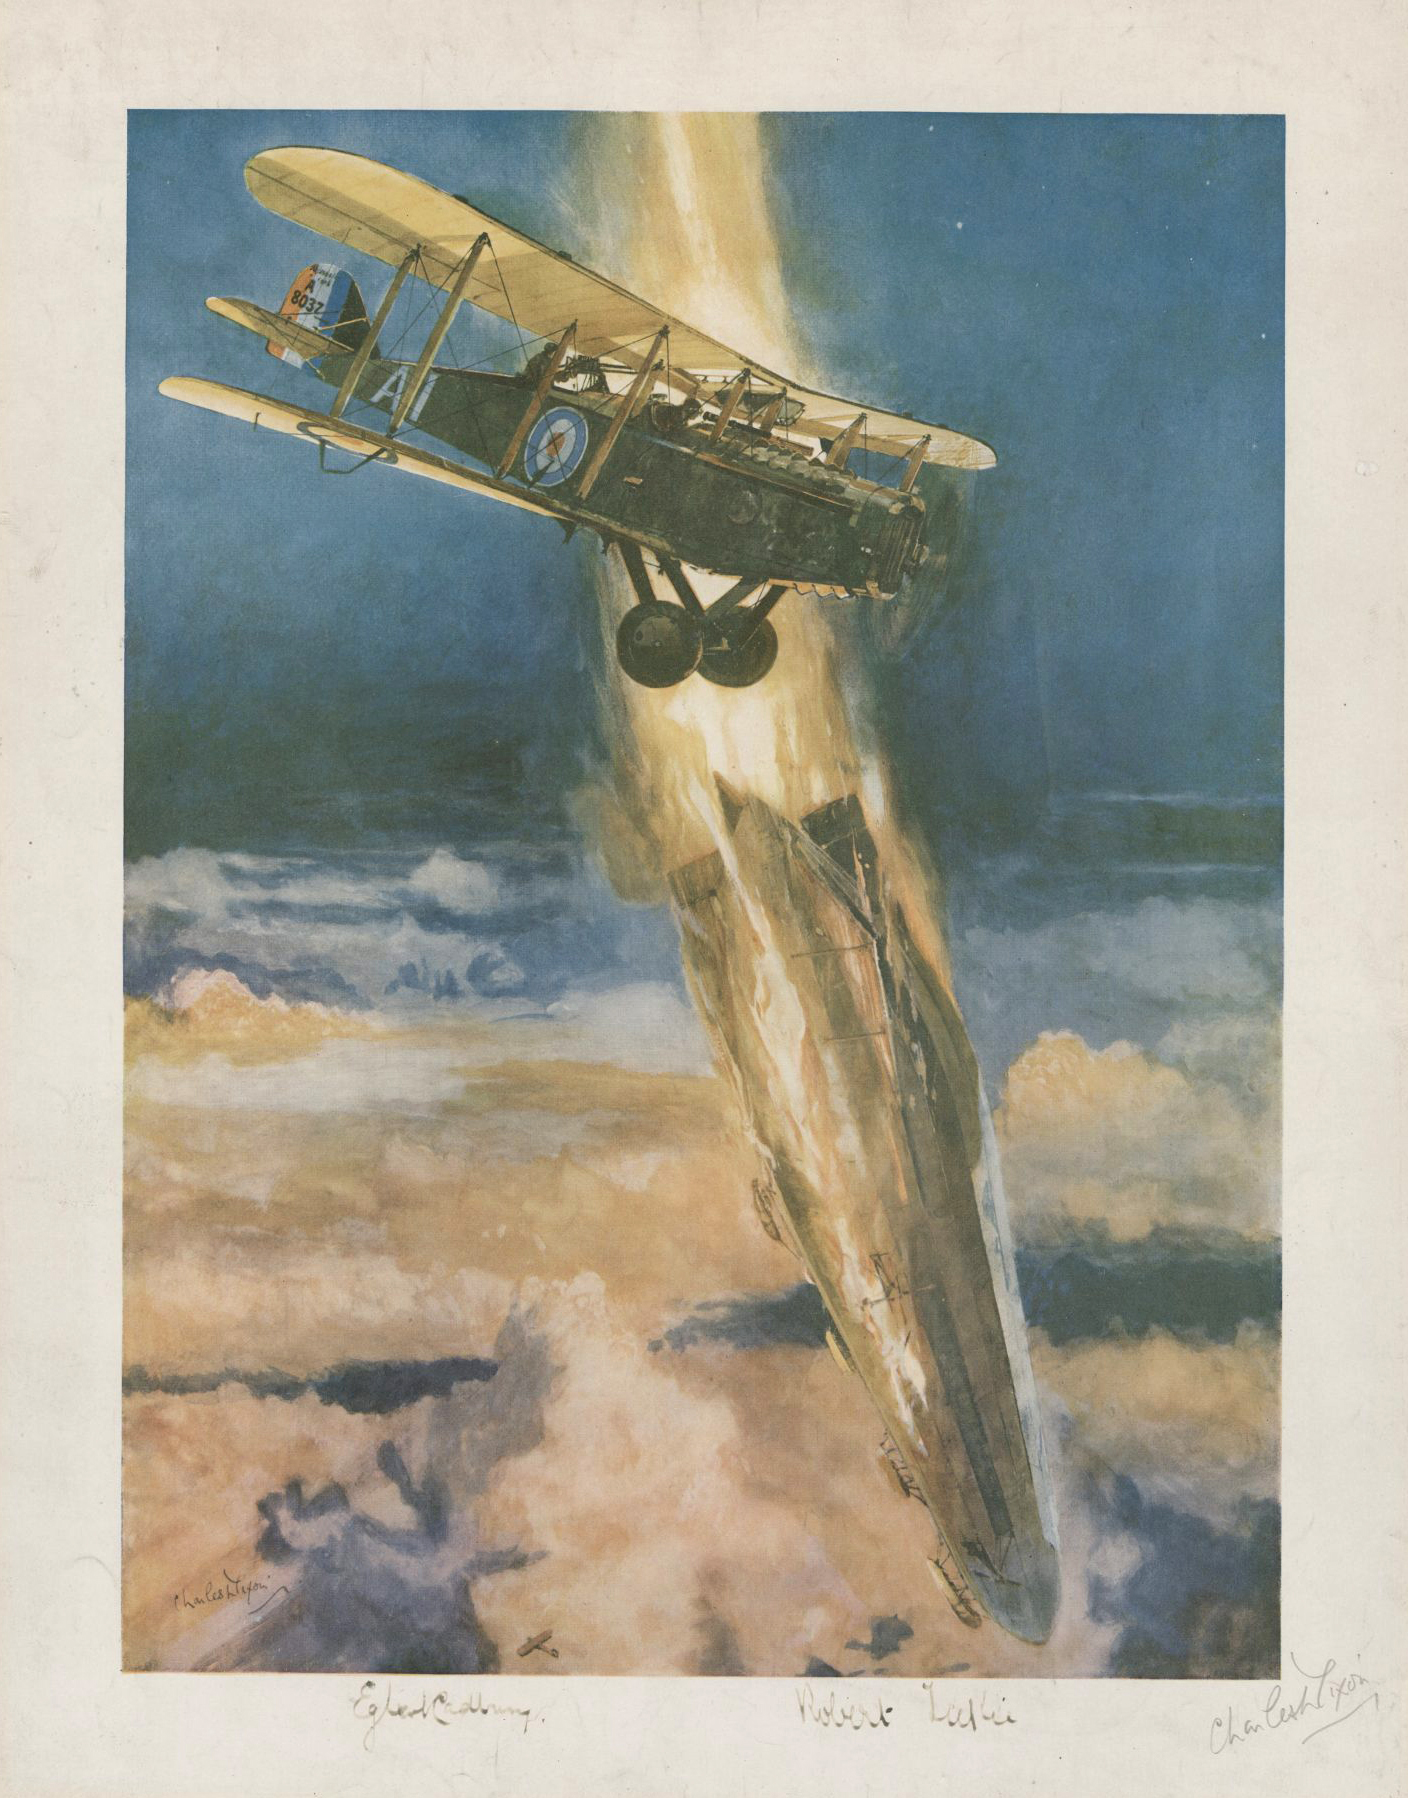 "On August 5, 1918, Cadbury was in the cockpit of de Havilland D.H.4 while Leckie had jumped into the observer's pit behind him. Upon sighting the L.70, Leckie fired incendiary Pomeroy ZPT rounds into the super Zeppelin, blowing a great hole in it. Within a minute, the airship and her crew of 22, including Peter Strasser, disappeared in flames into the North Sea. (""shooting down a zeppelin"" by charles dixon, cwm,   19910216-400  )"